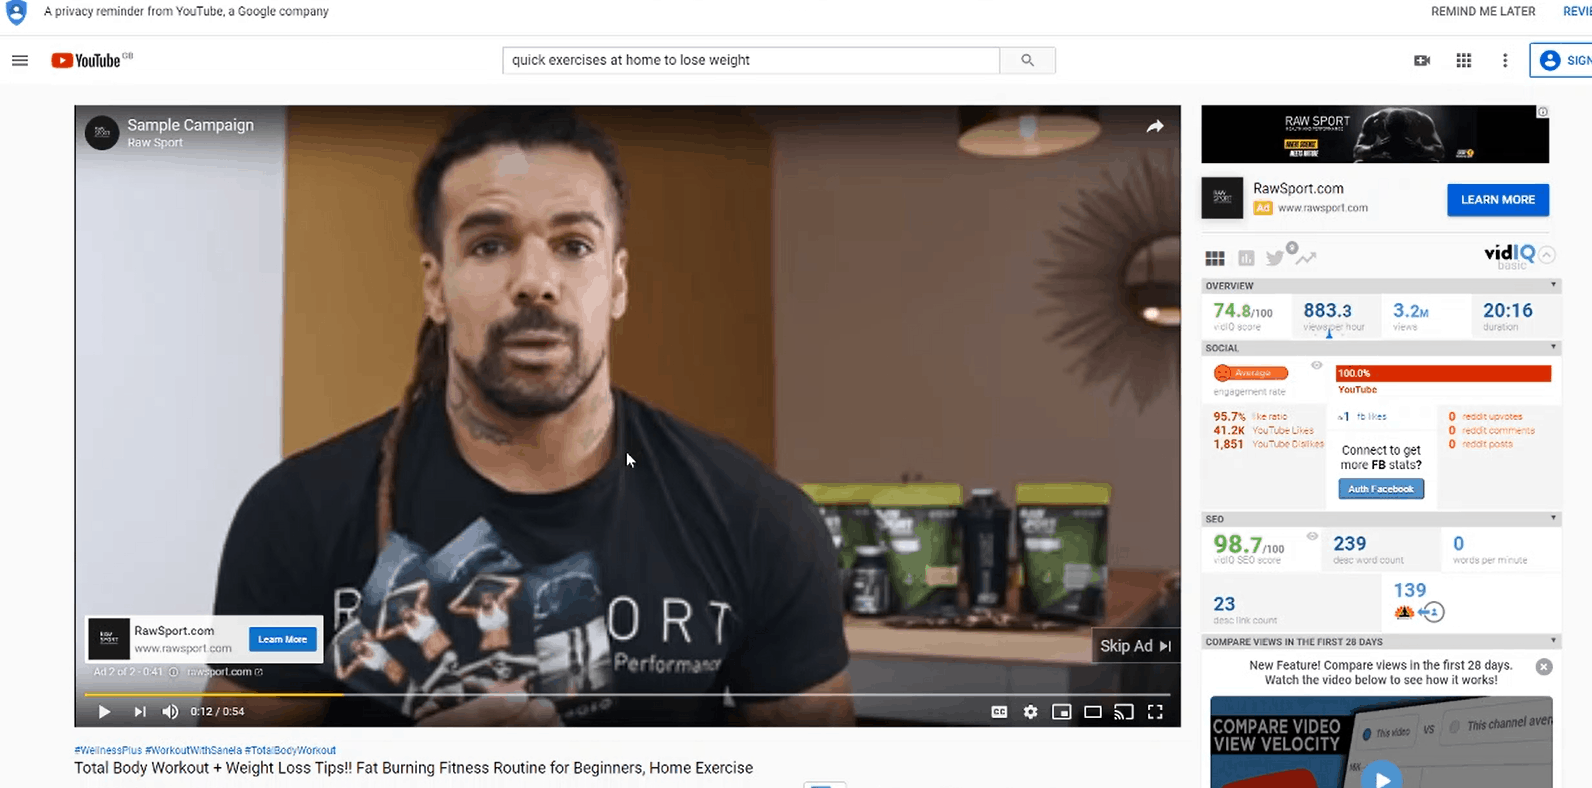 YouTube Pre Roll Ad Showing On Exercise Video For Nutrition Company